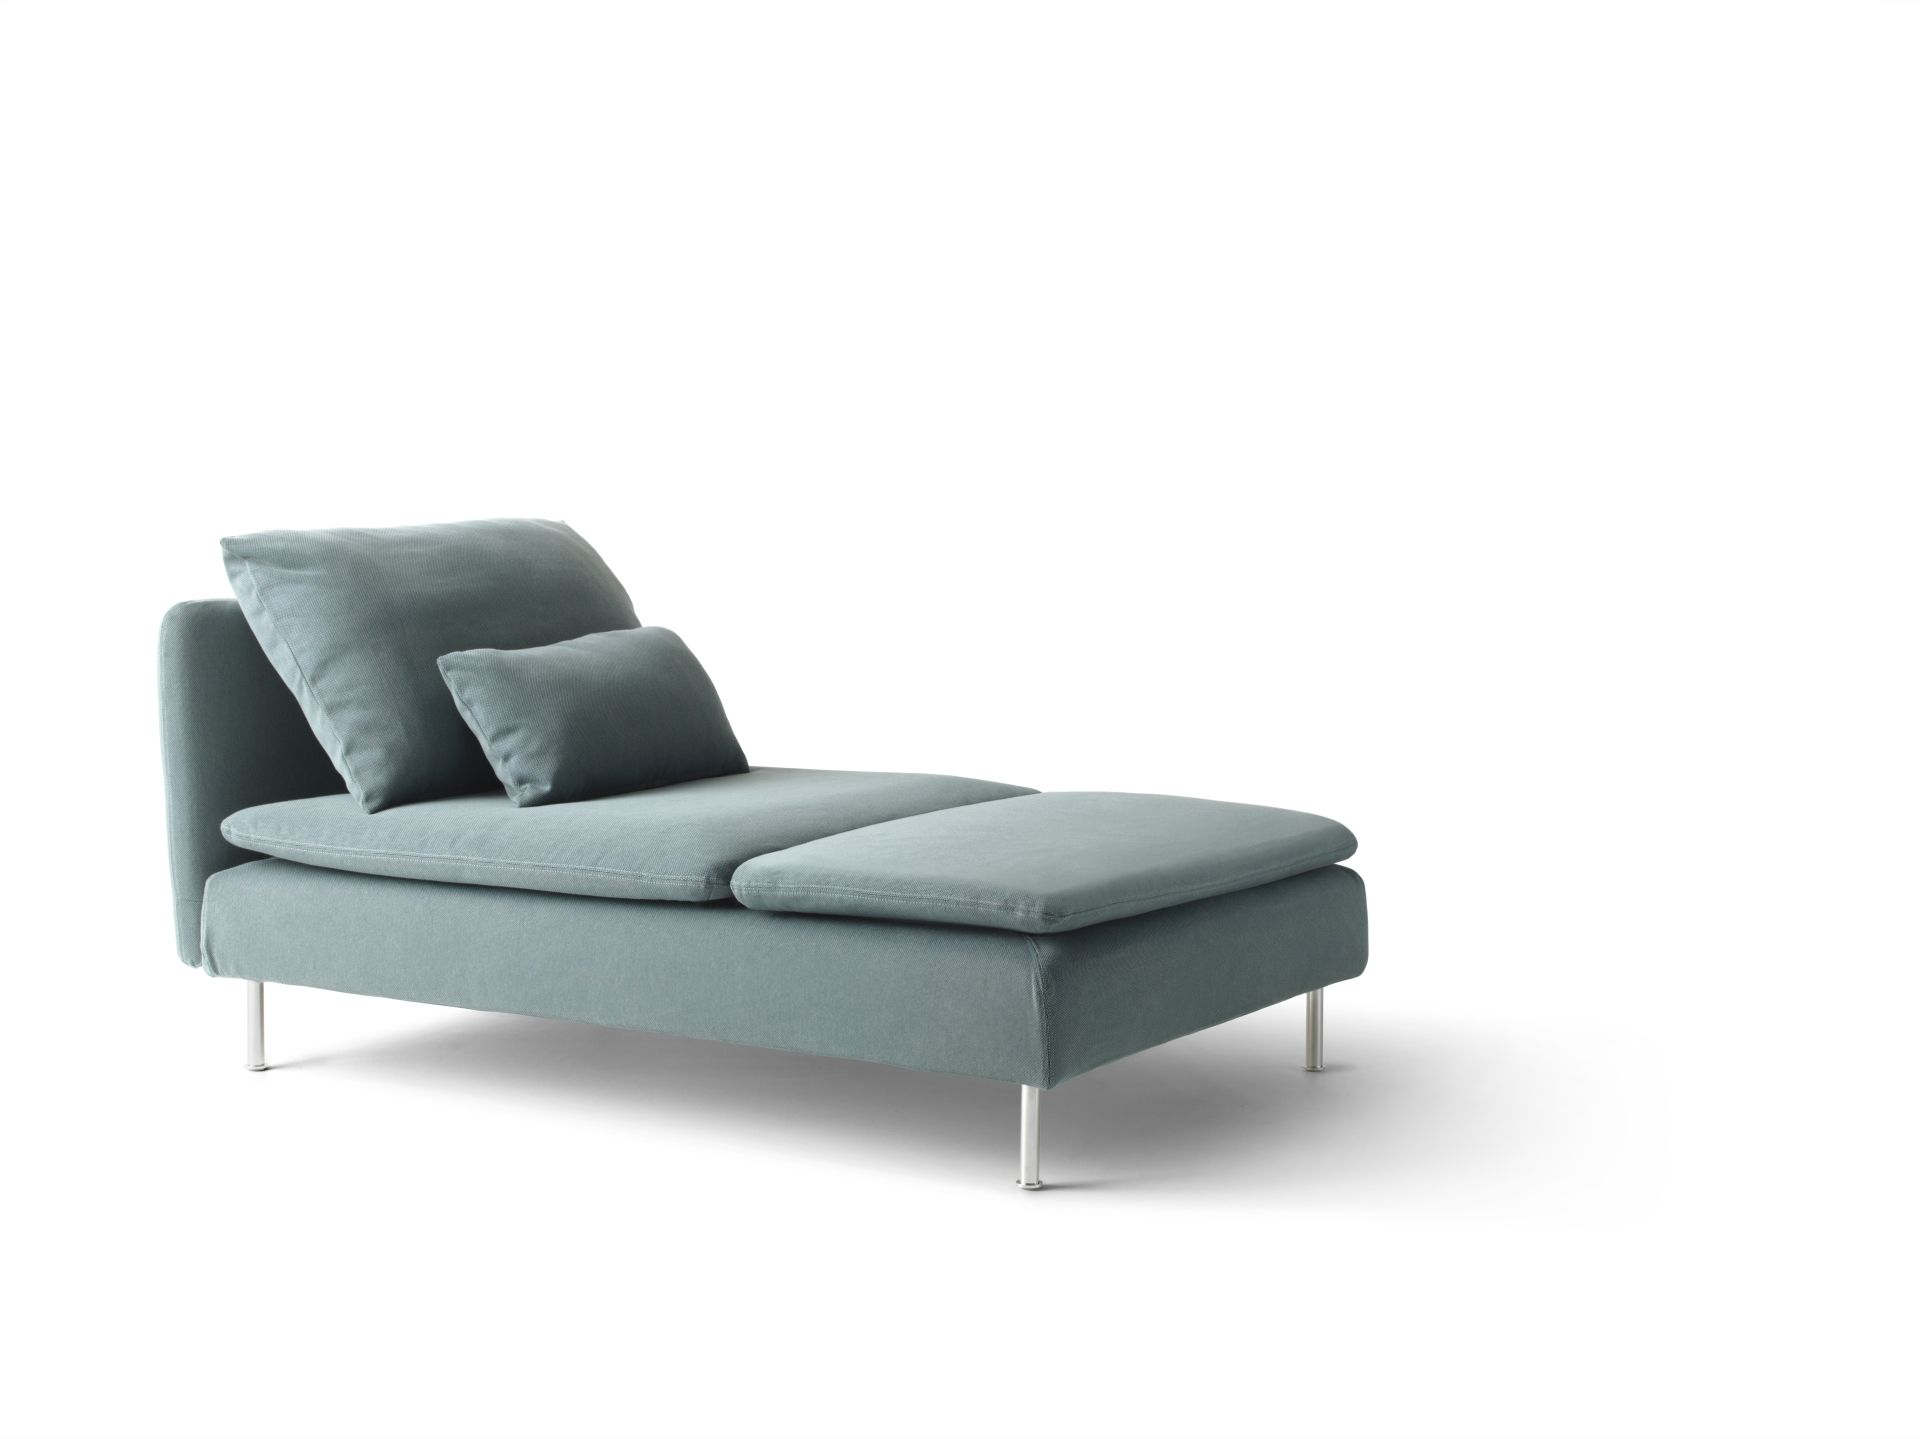 Bank Chaise Lounge Söderhamn Products Met And Chaise Longue